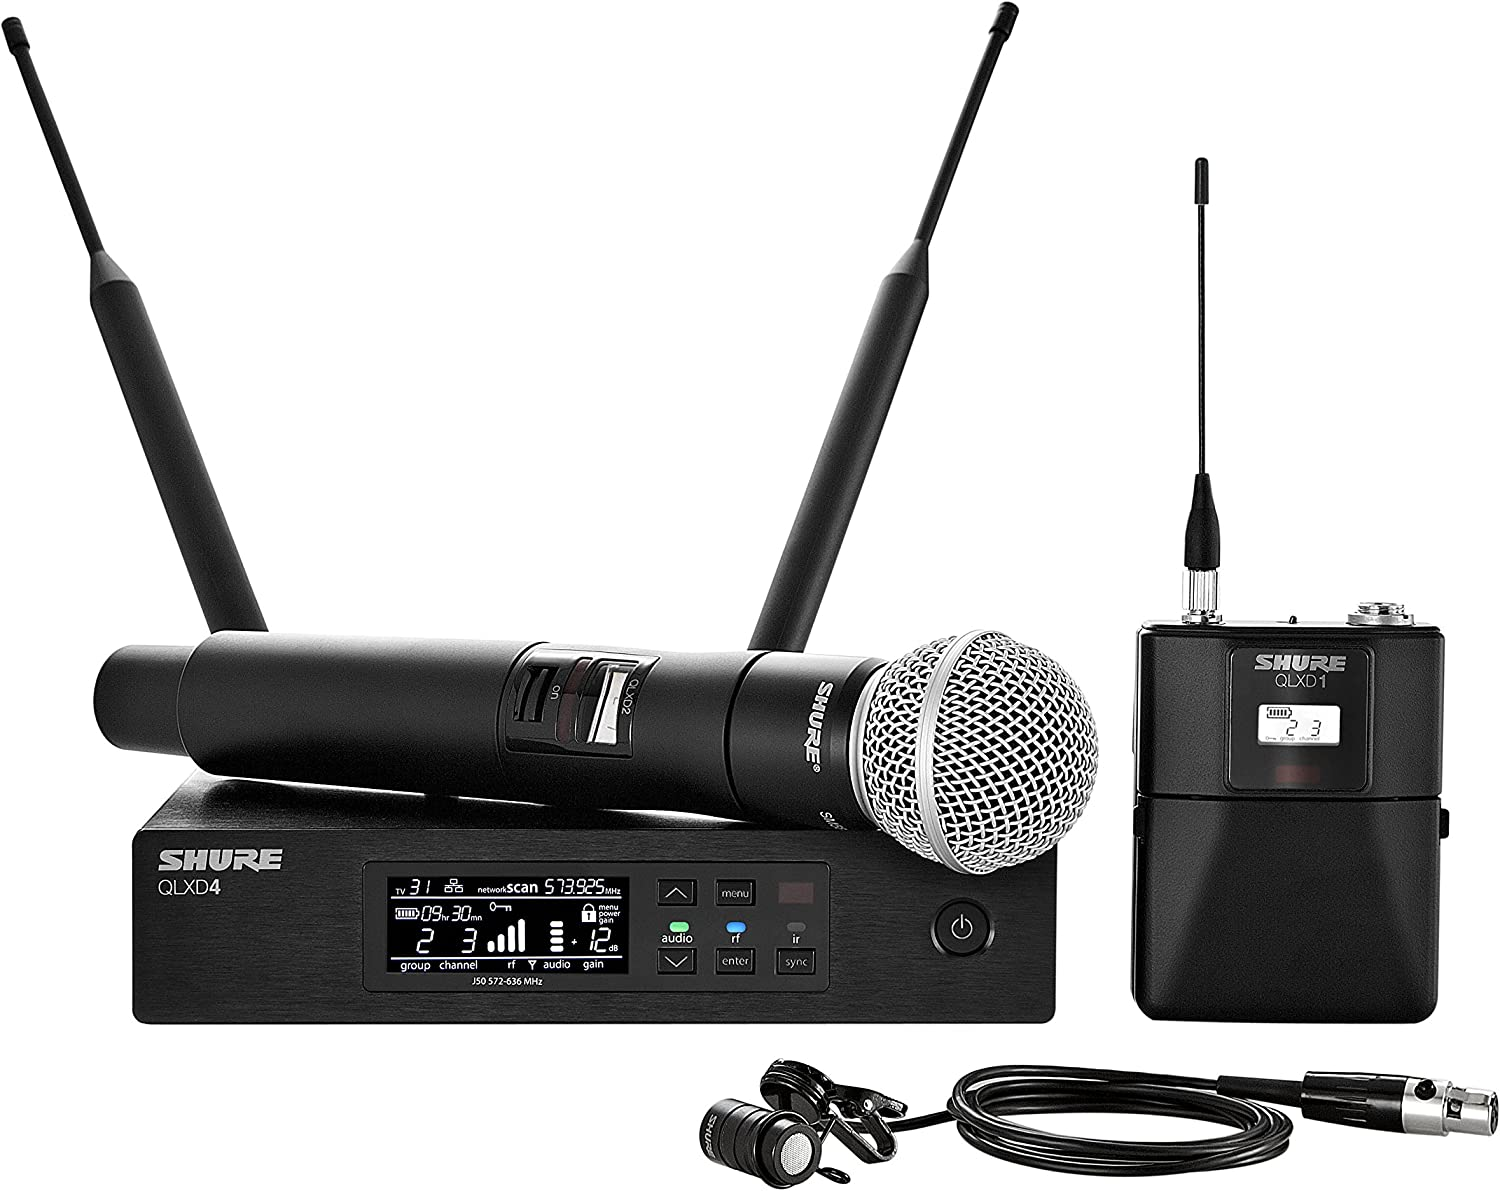 Recommendation Shure QLXD124 85 Dual Channel with SM System Wireless Luxury Microphone